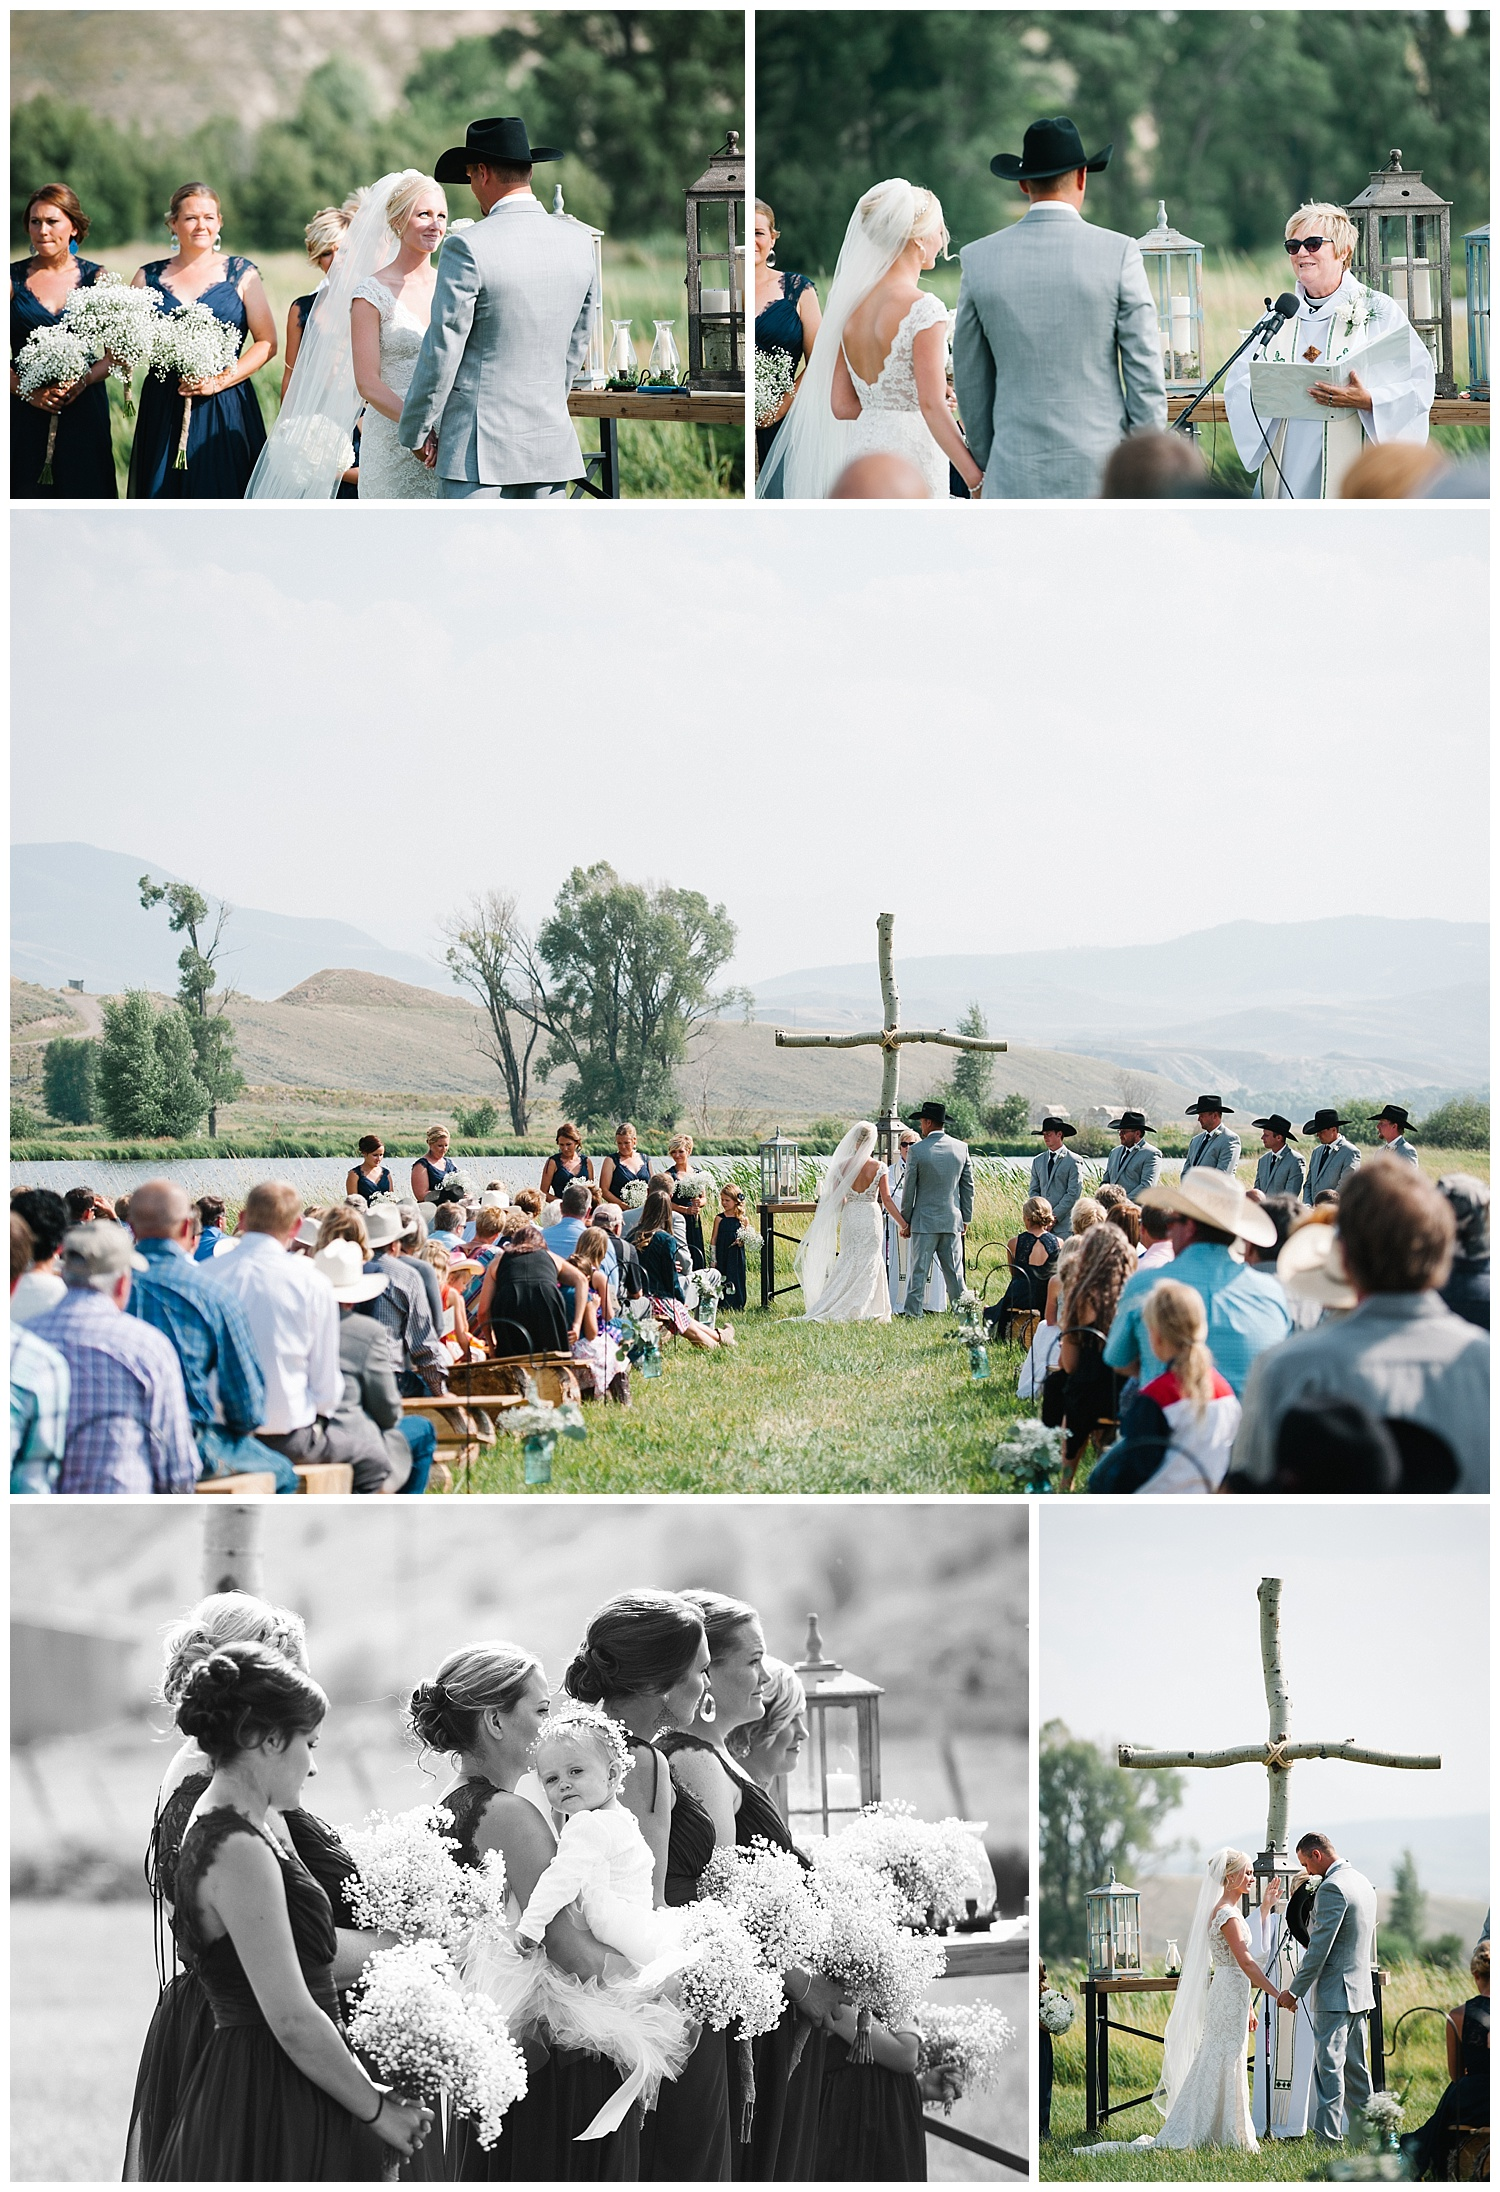 Kremmling, CO Ranch Wedding by Caitlin Steuben Photography